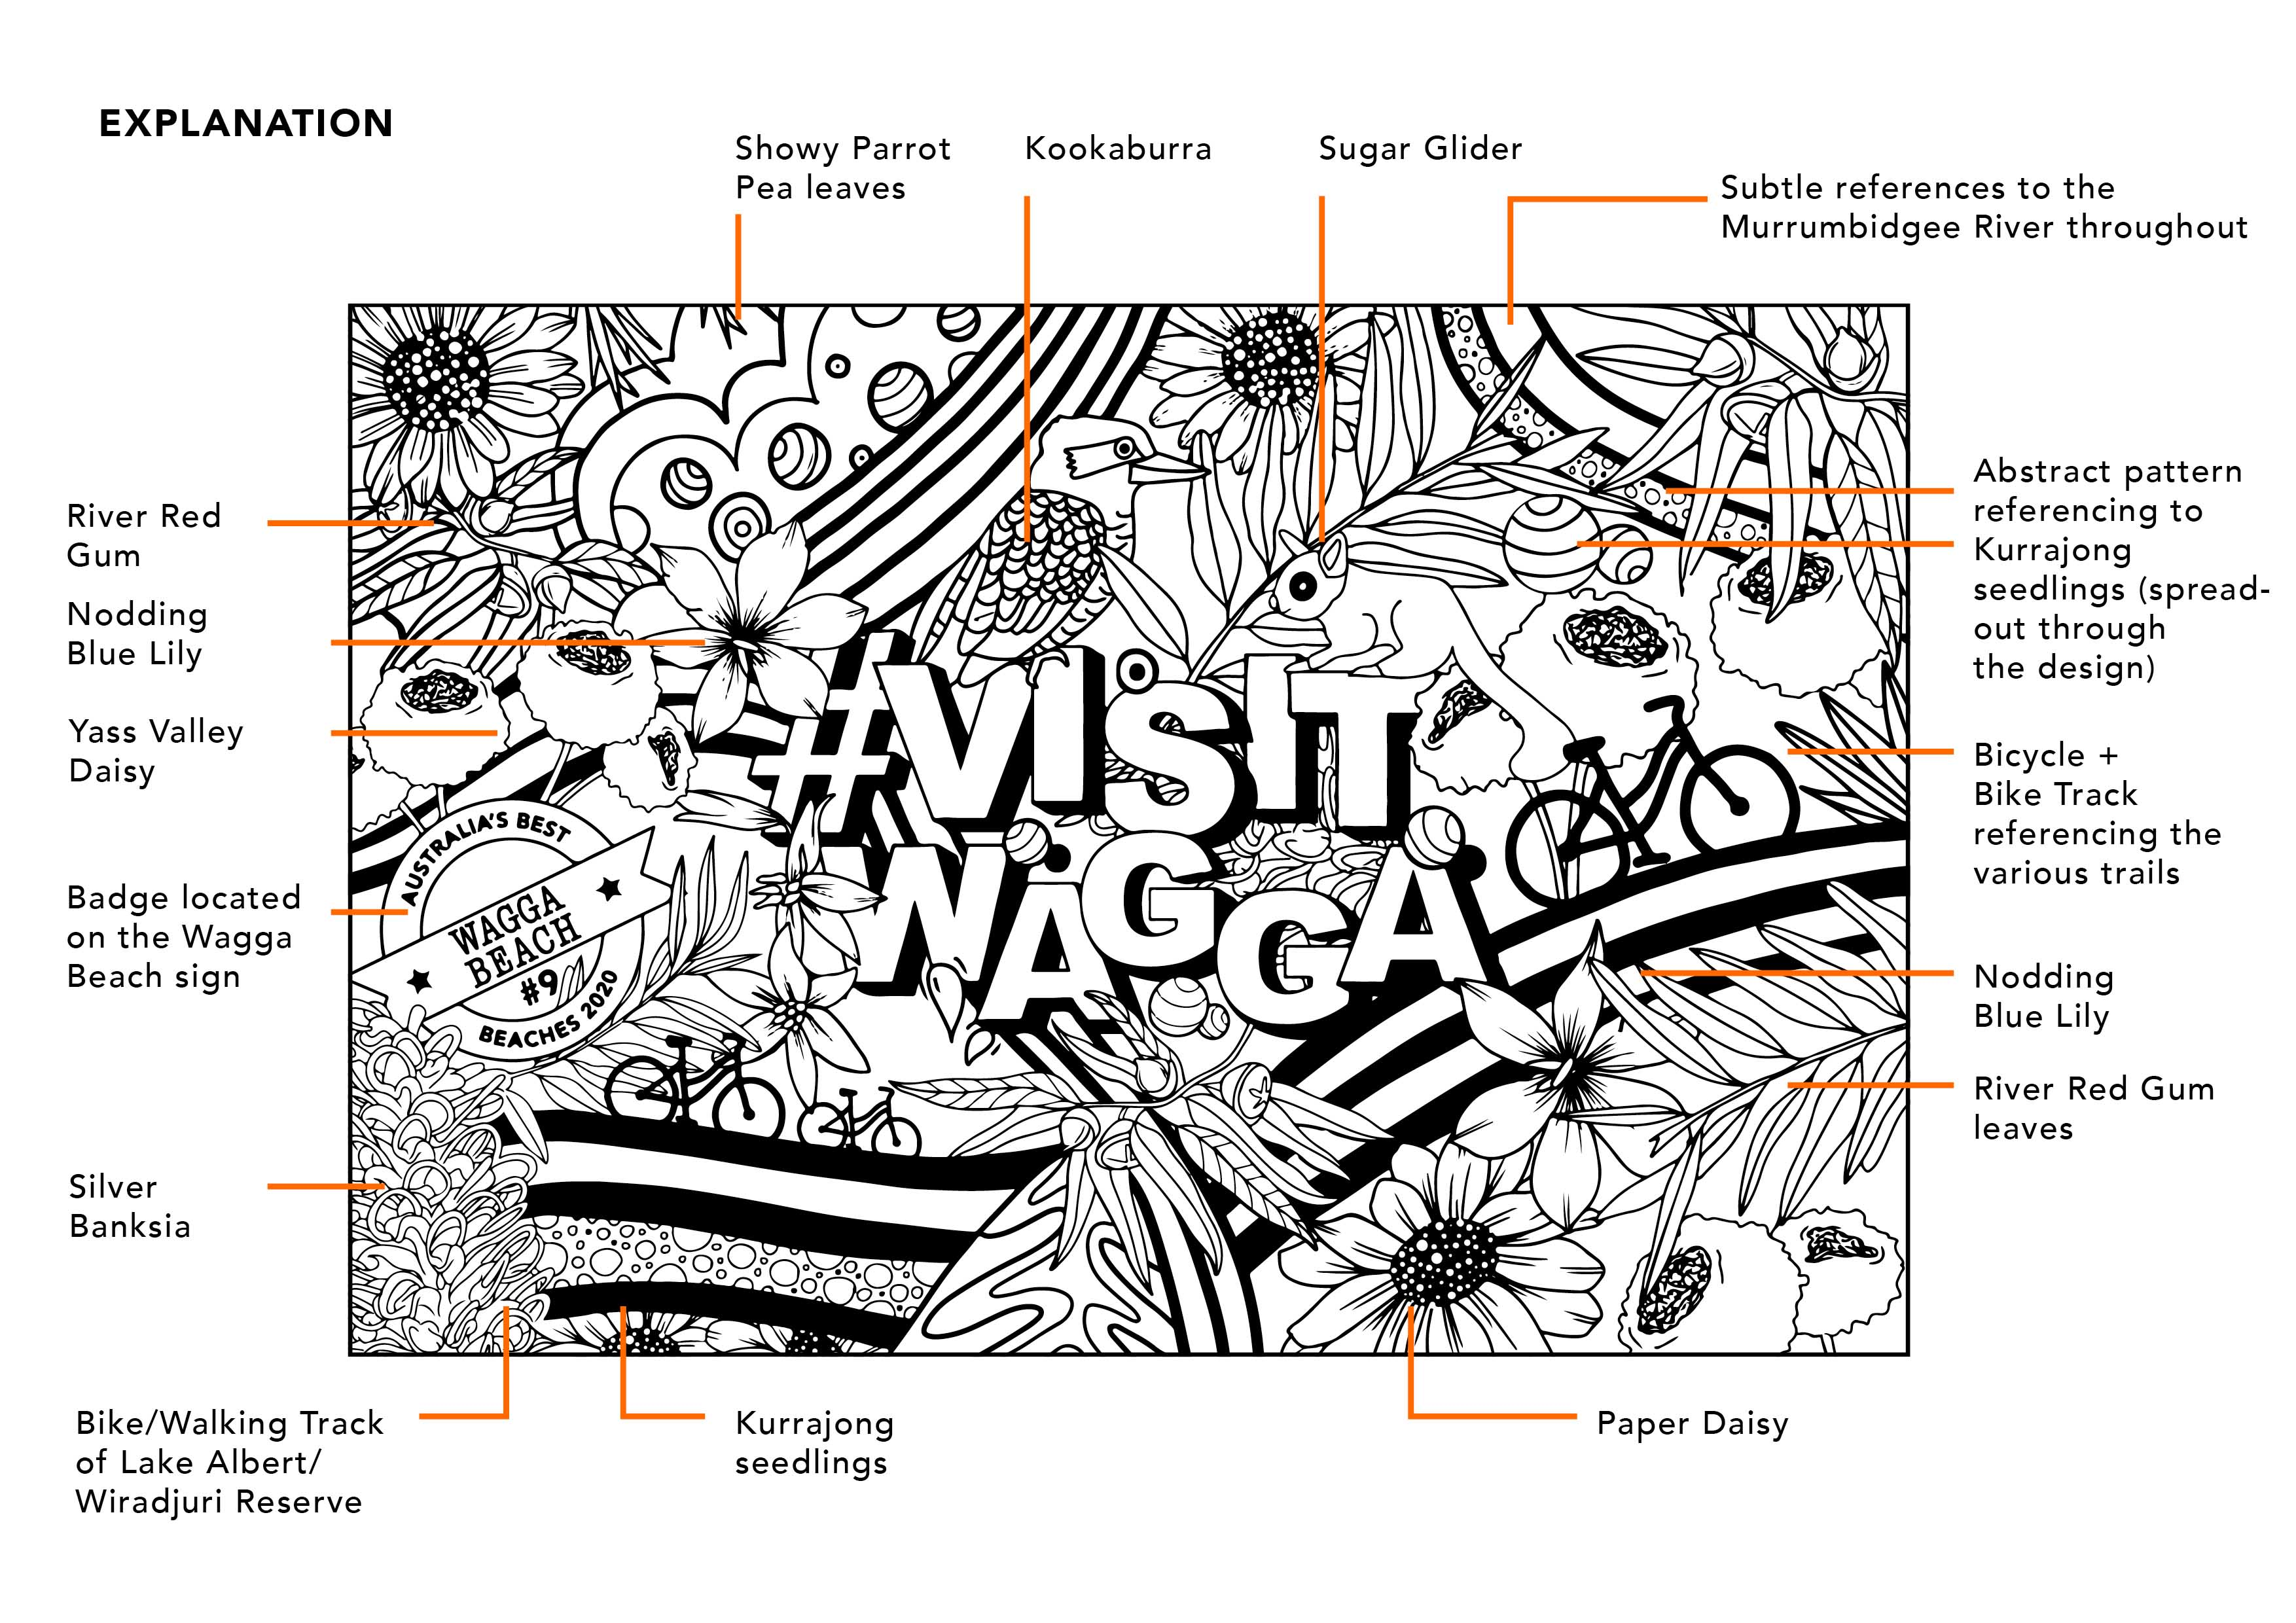 A description of each element in the Wagga Wagga mindfulness colouring design